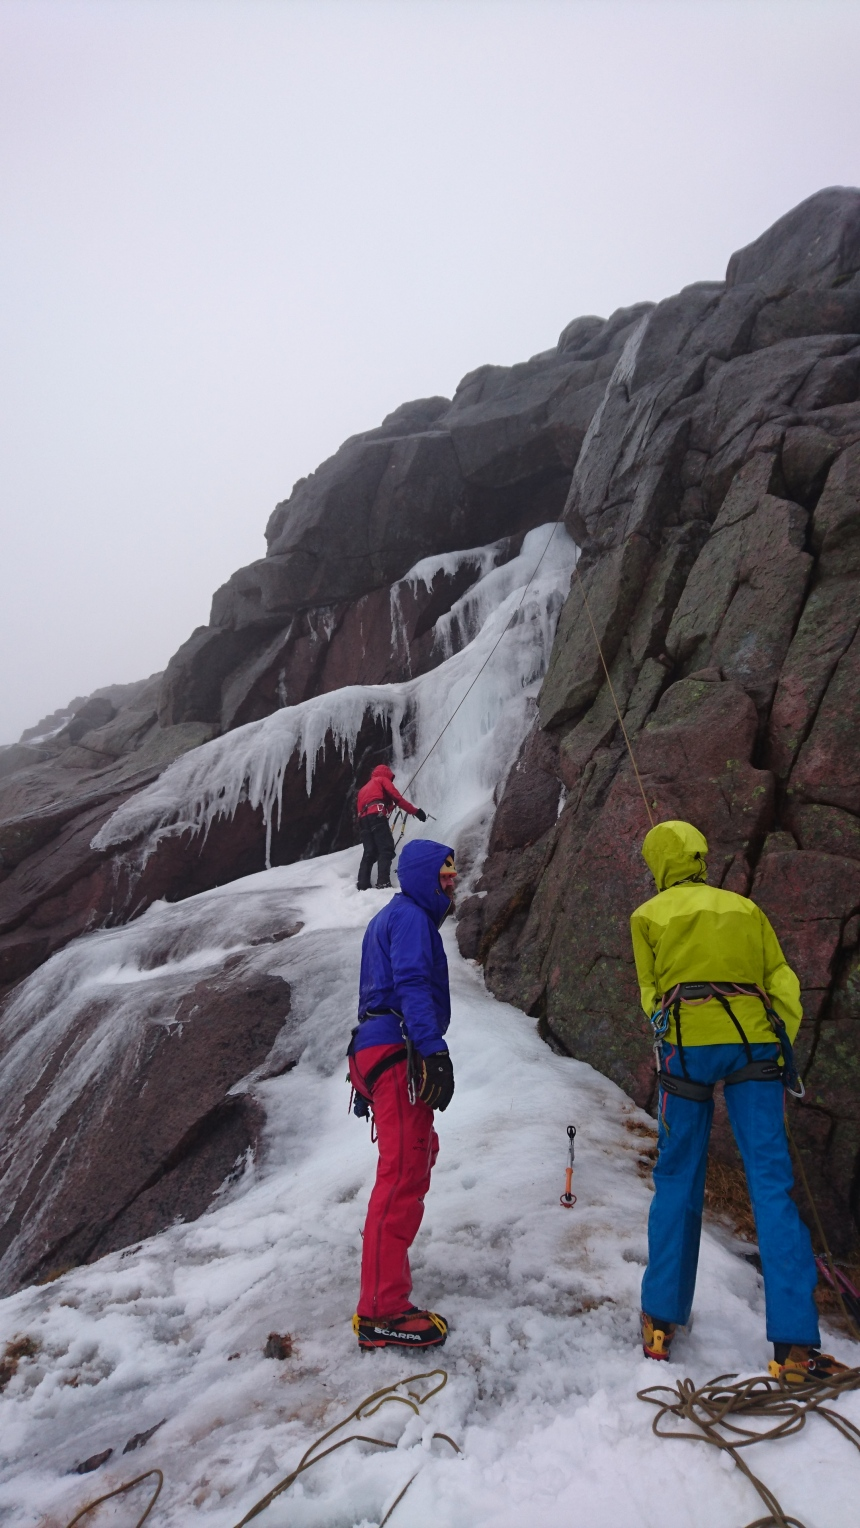 There was some reliable ice around for the guys to climb